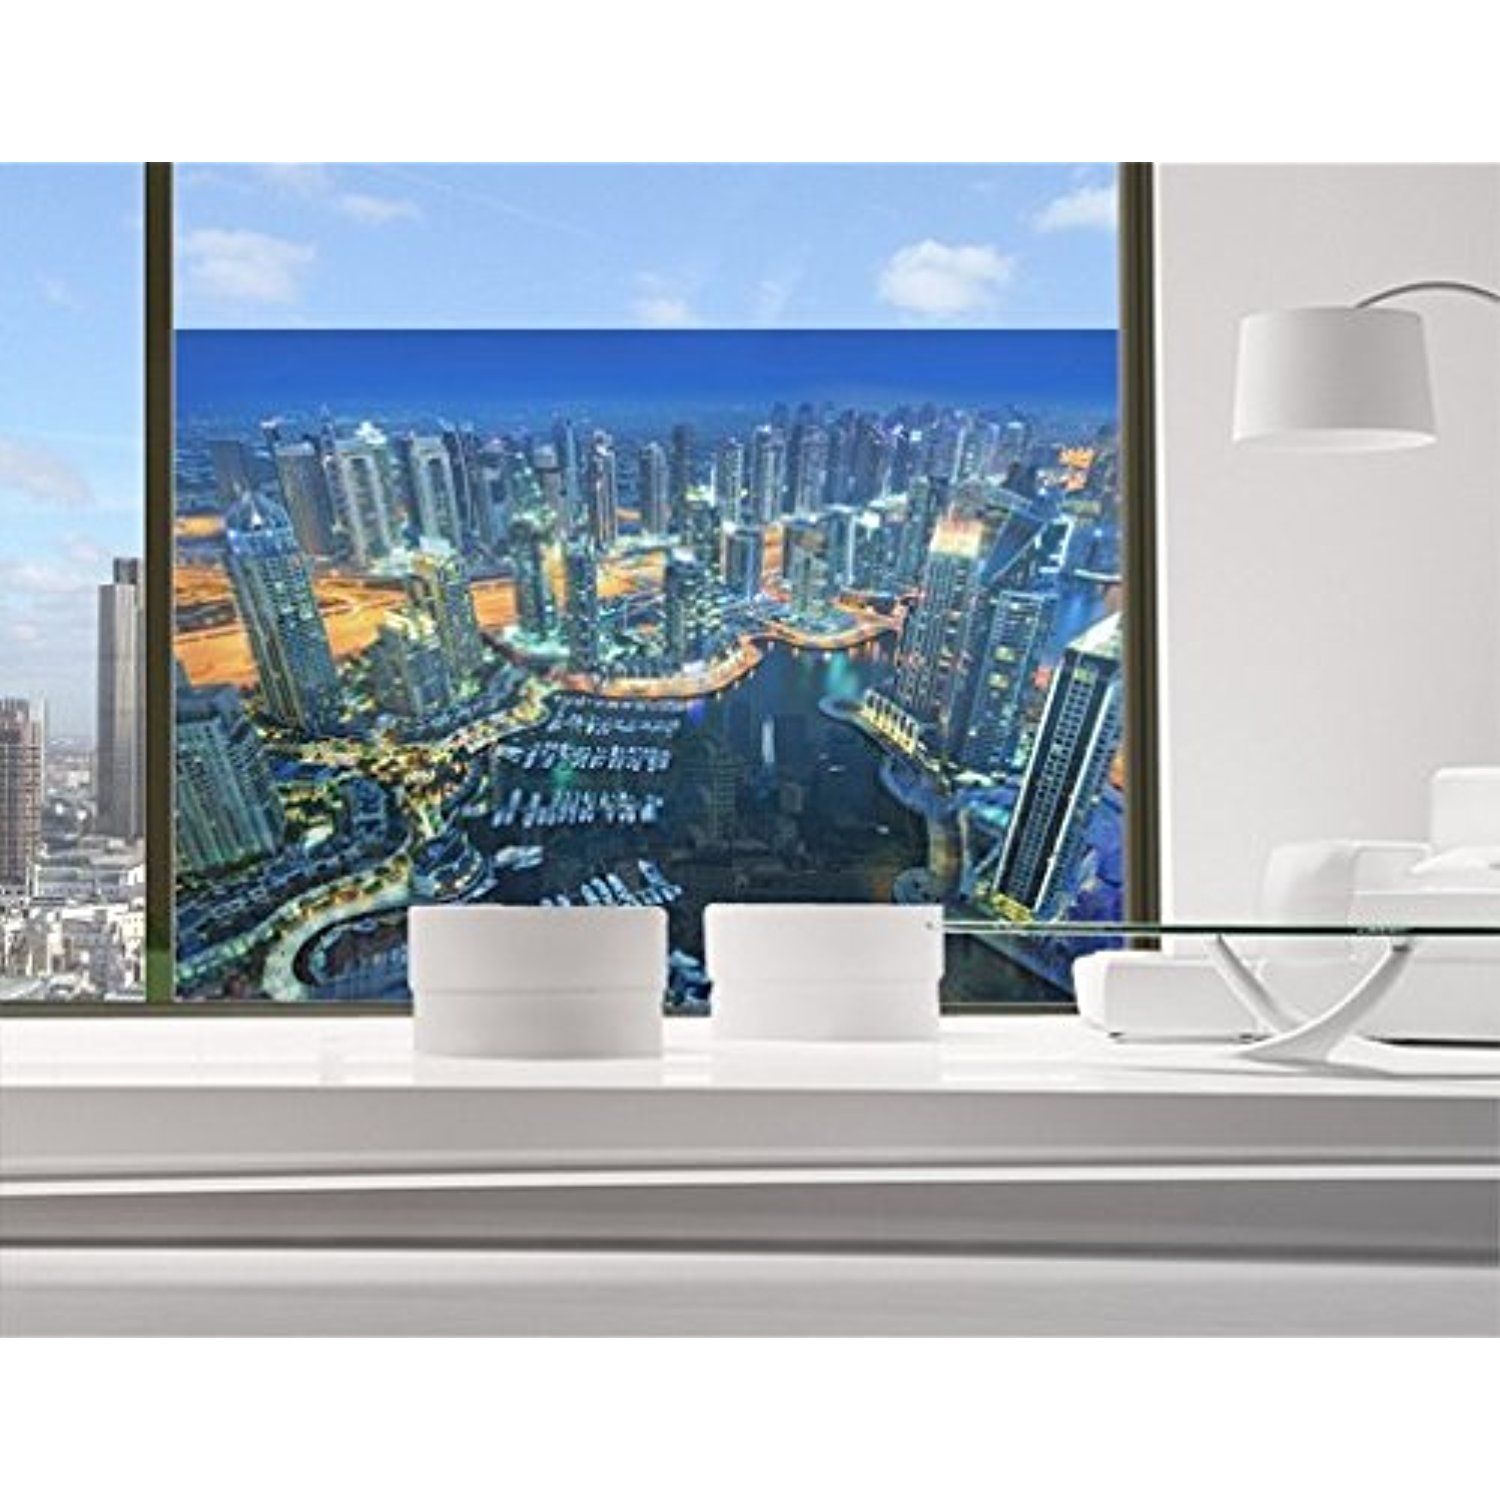 Déco Murale Diy Window Mural Nocturnal Dubai Marina Window Sticker Window Film